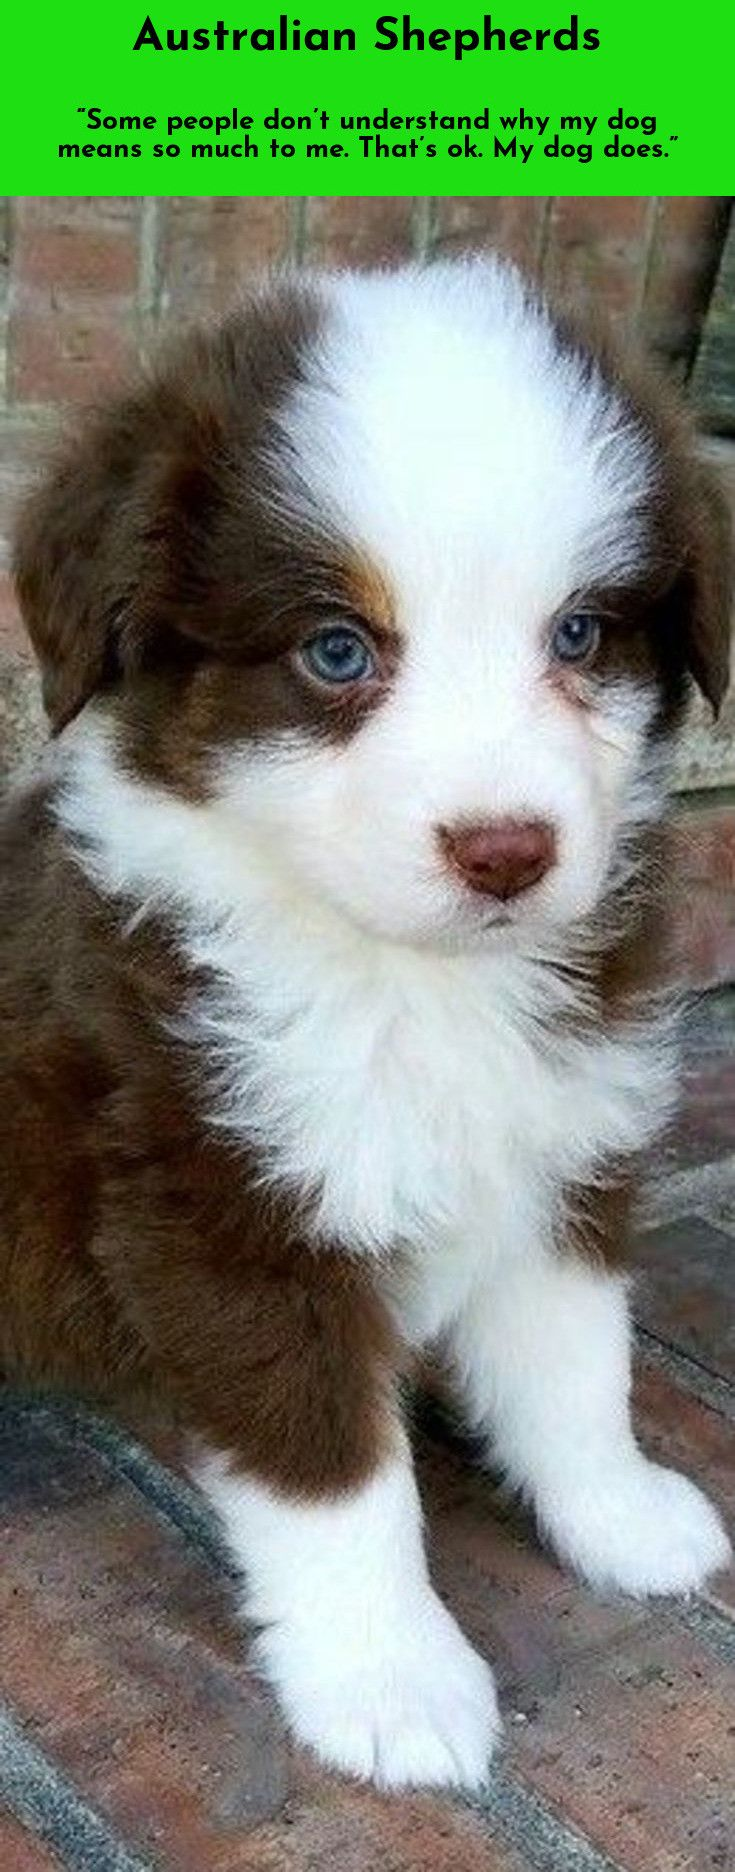 Acquiring A Dog May Be The Only Time A Person Gets To Choose A Relative Mordecai Siegal Australianshepherd Aussieshe Lustige Tierfotos Hunde Tier Fotos